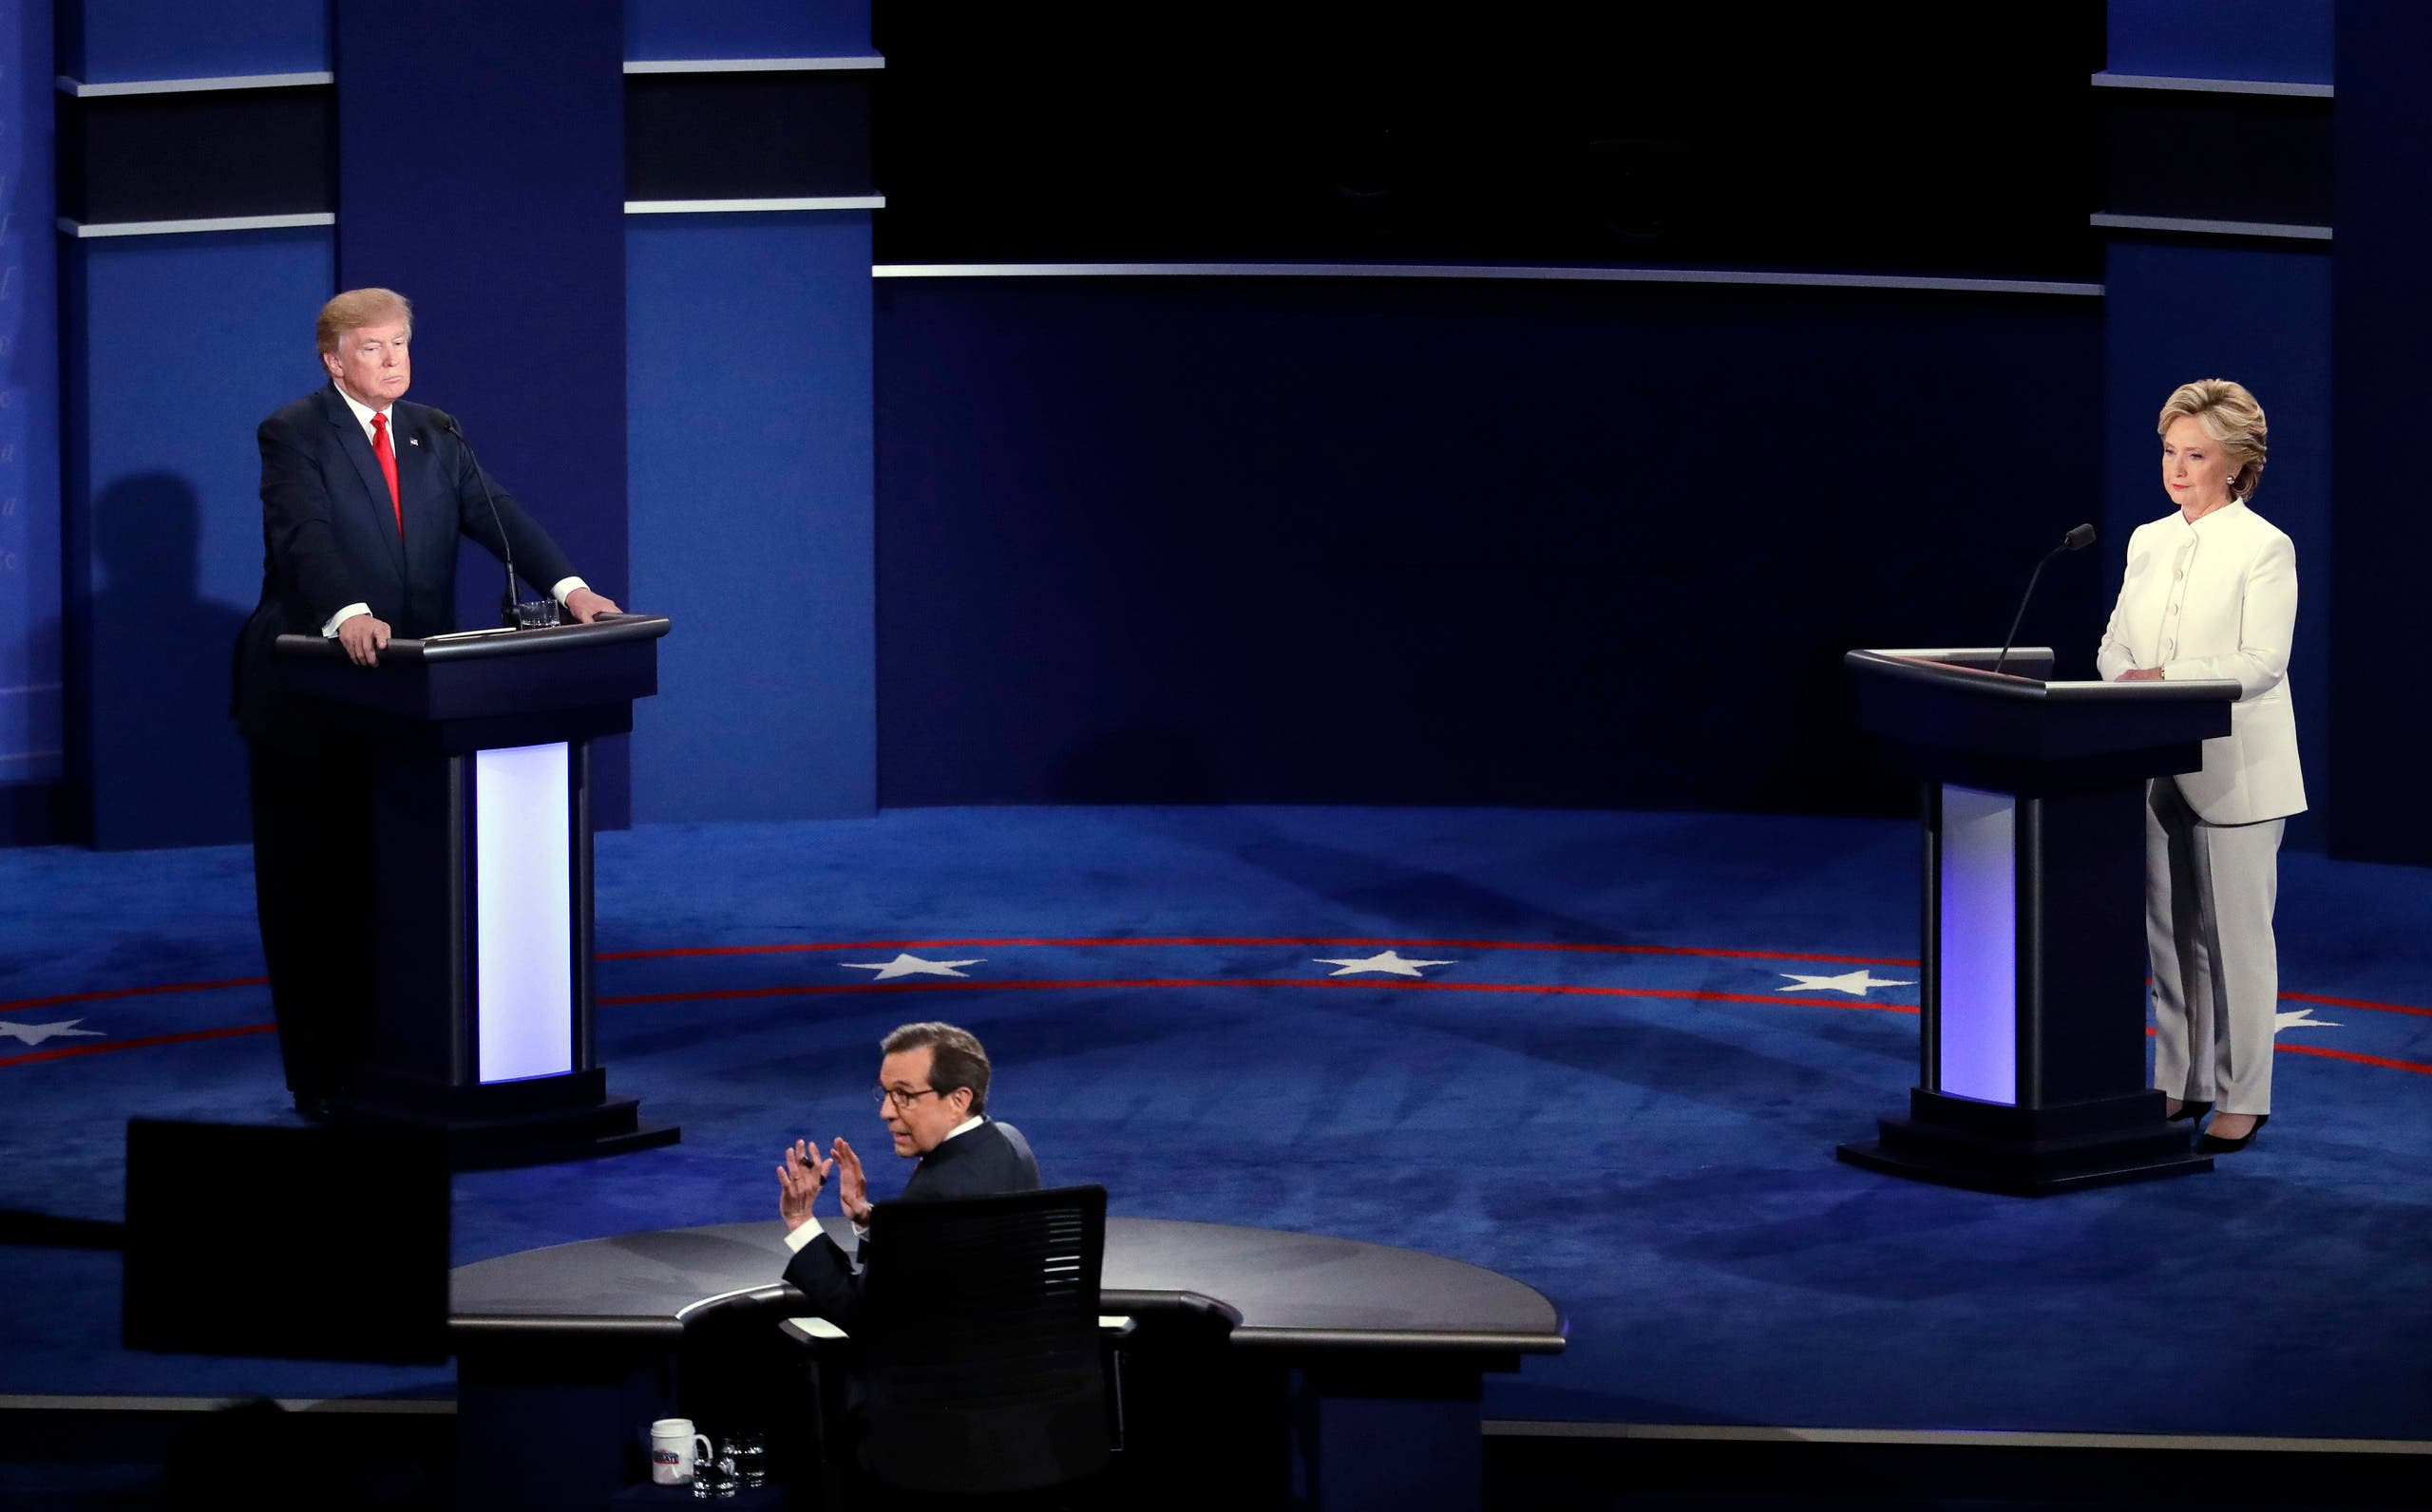 Moderator Chris Wallace, of FOX News, turns towards the audience as he questions Democratic presidential nominee Hillary Clinton and Republican presidential nominee Donald Trump during the third presidential debate at UNLV in Las Vegas, Wednesday, Oct. 19, 2016.(AP